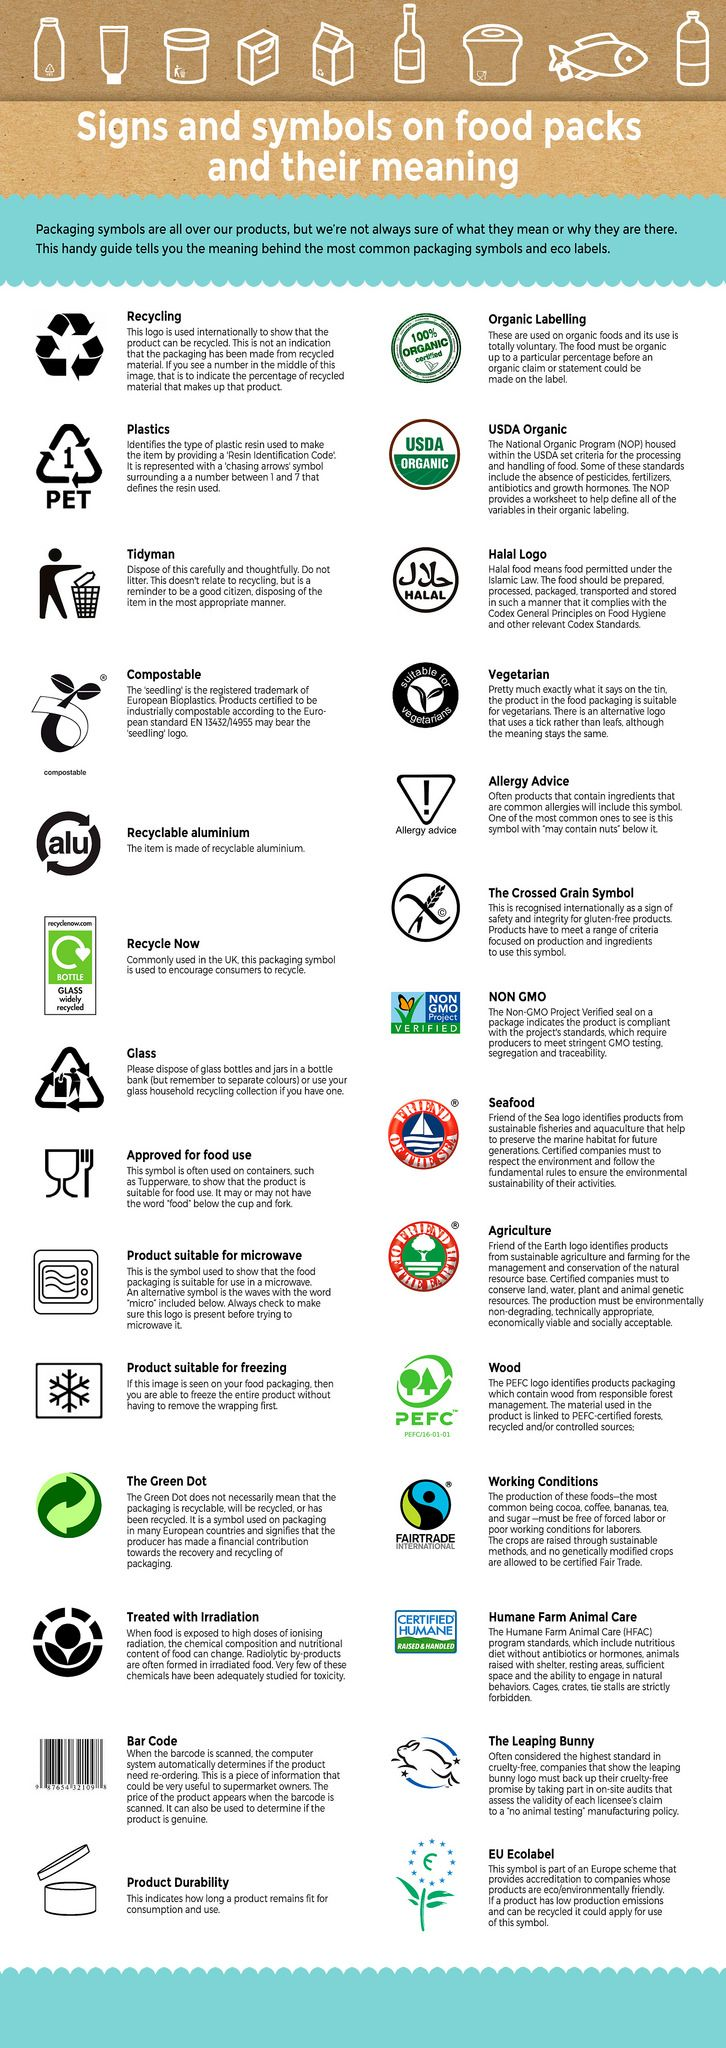 Most Popular Signs Symbols Ecolabels On Food Packaging And Their Meaning Food Packaging Recycling Information Organic Labels